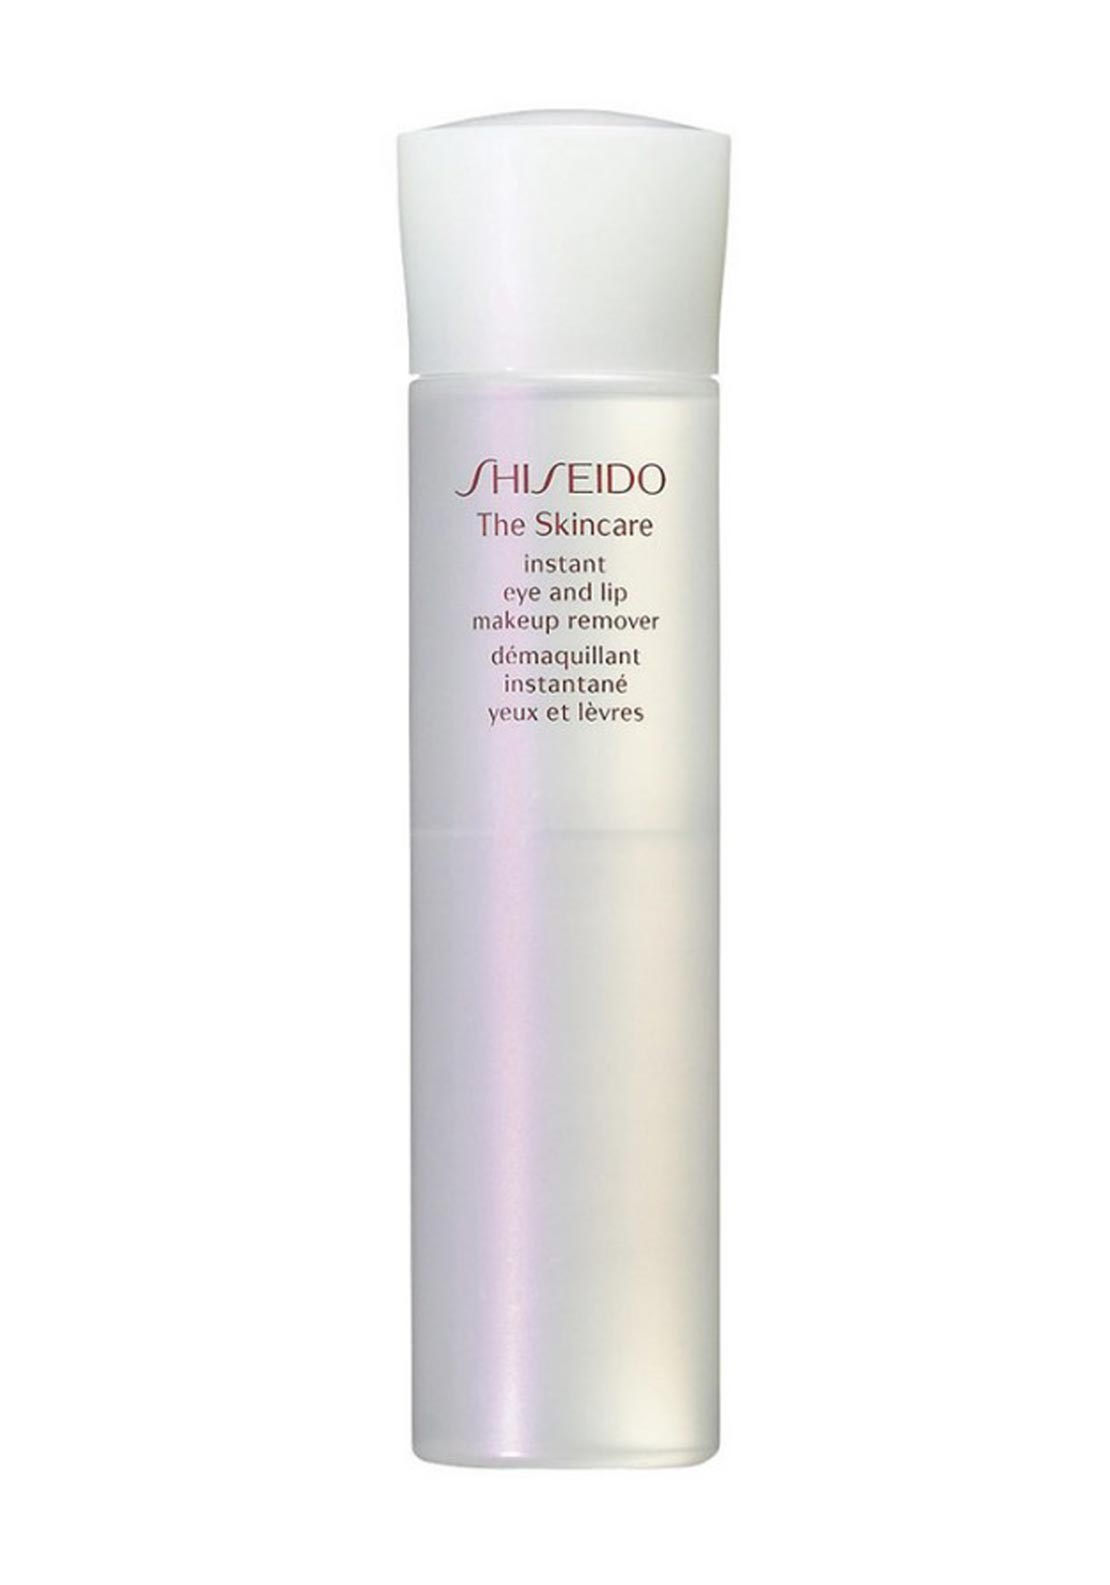 Shiseido Instant Eye and Lip Makeup Remover, 125ml